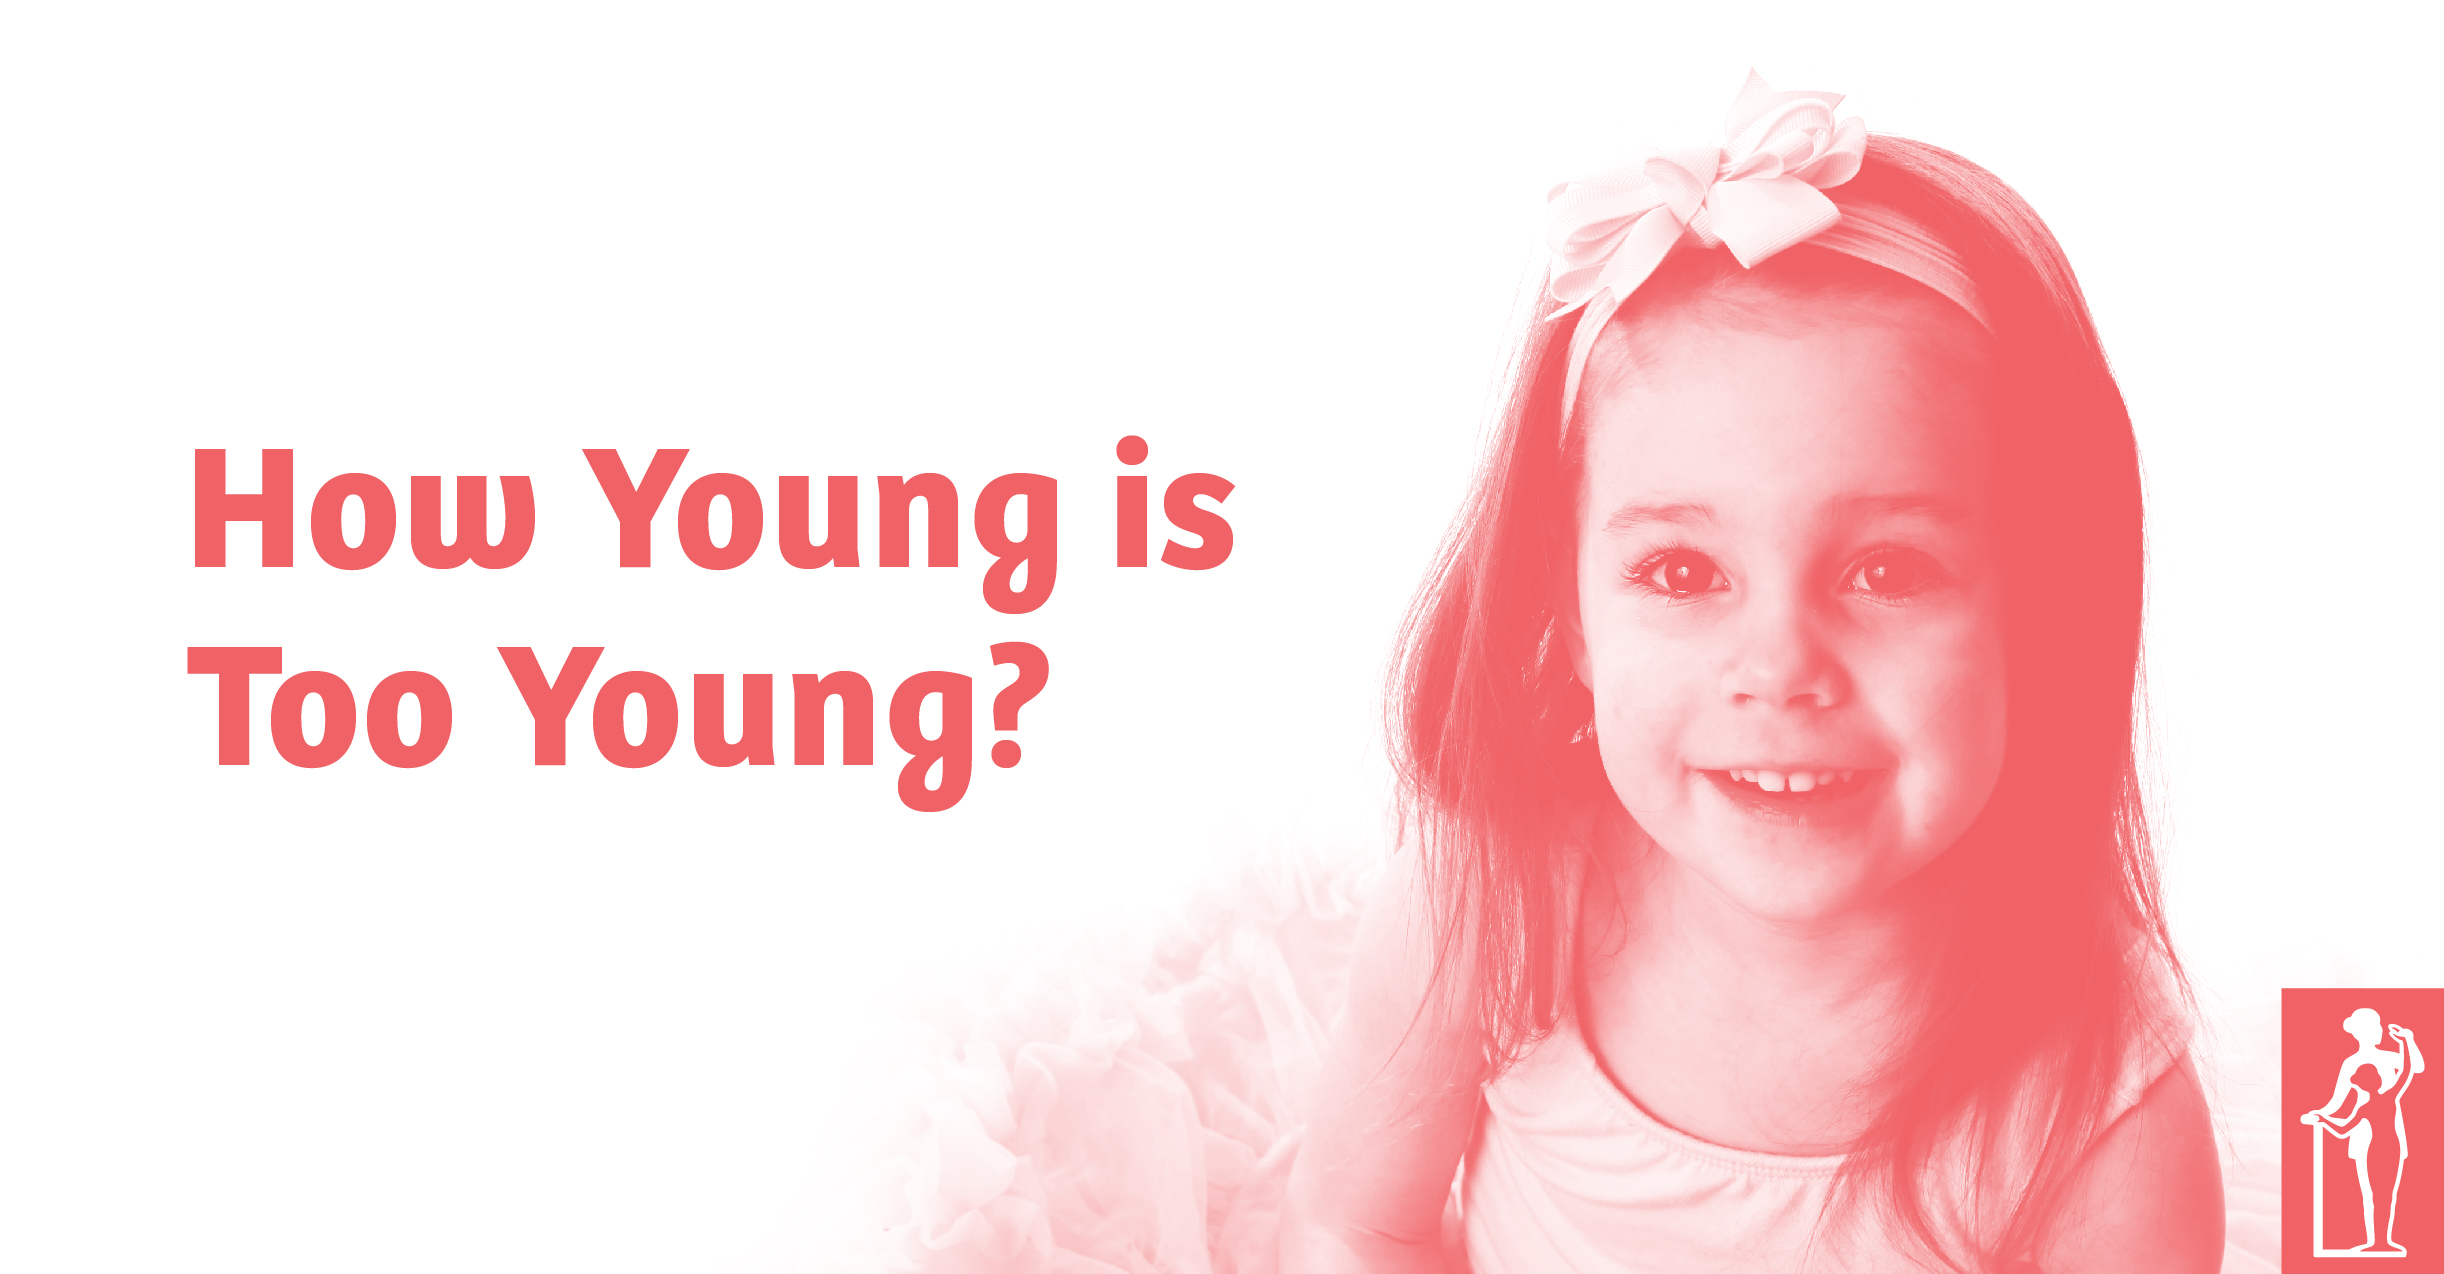 How Young is Too Young?